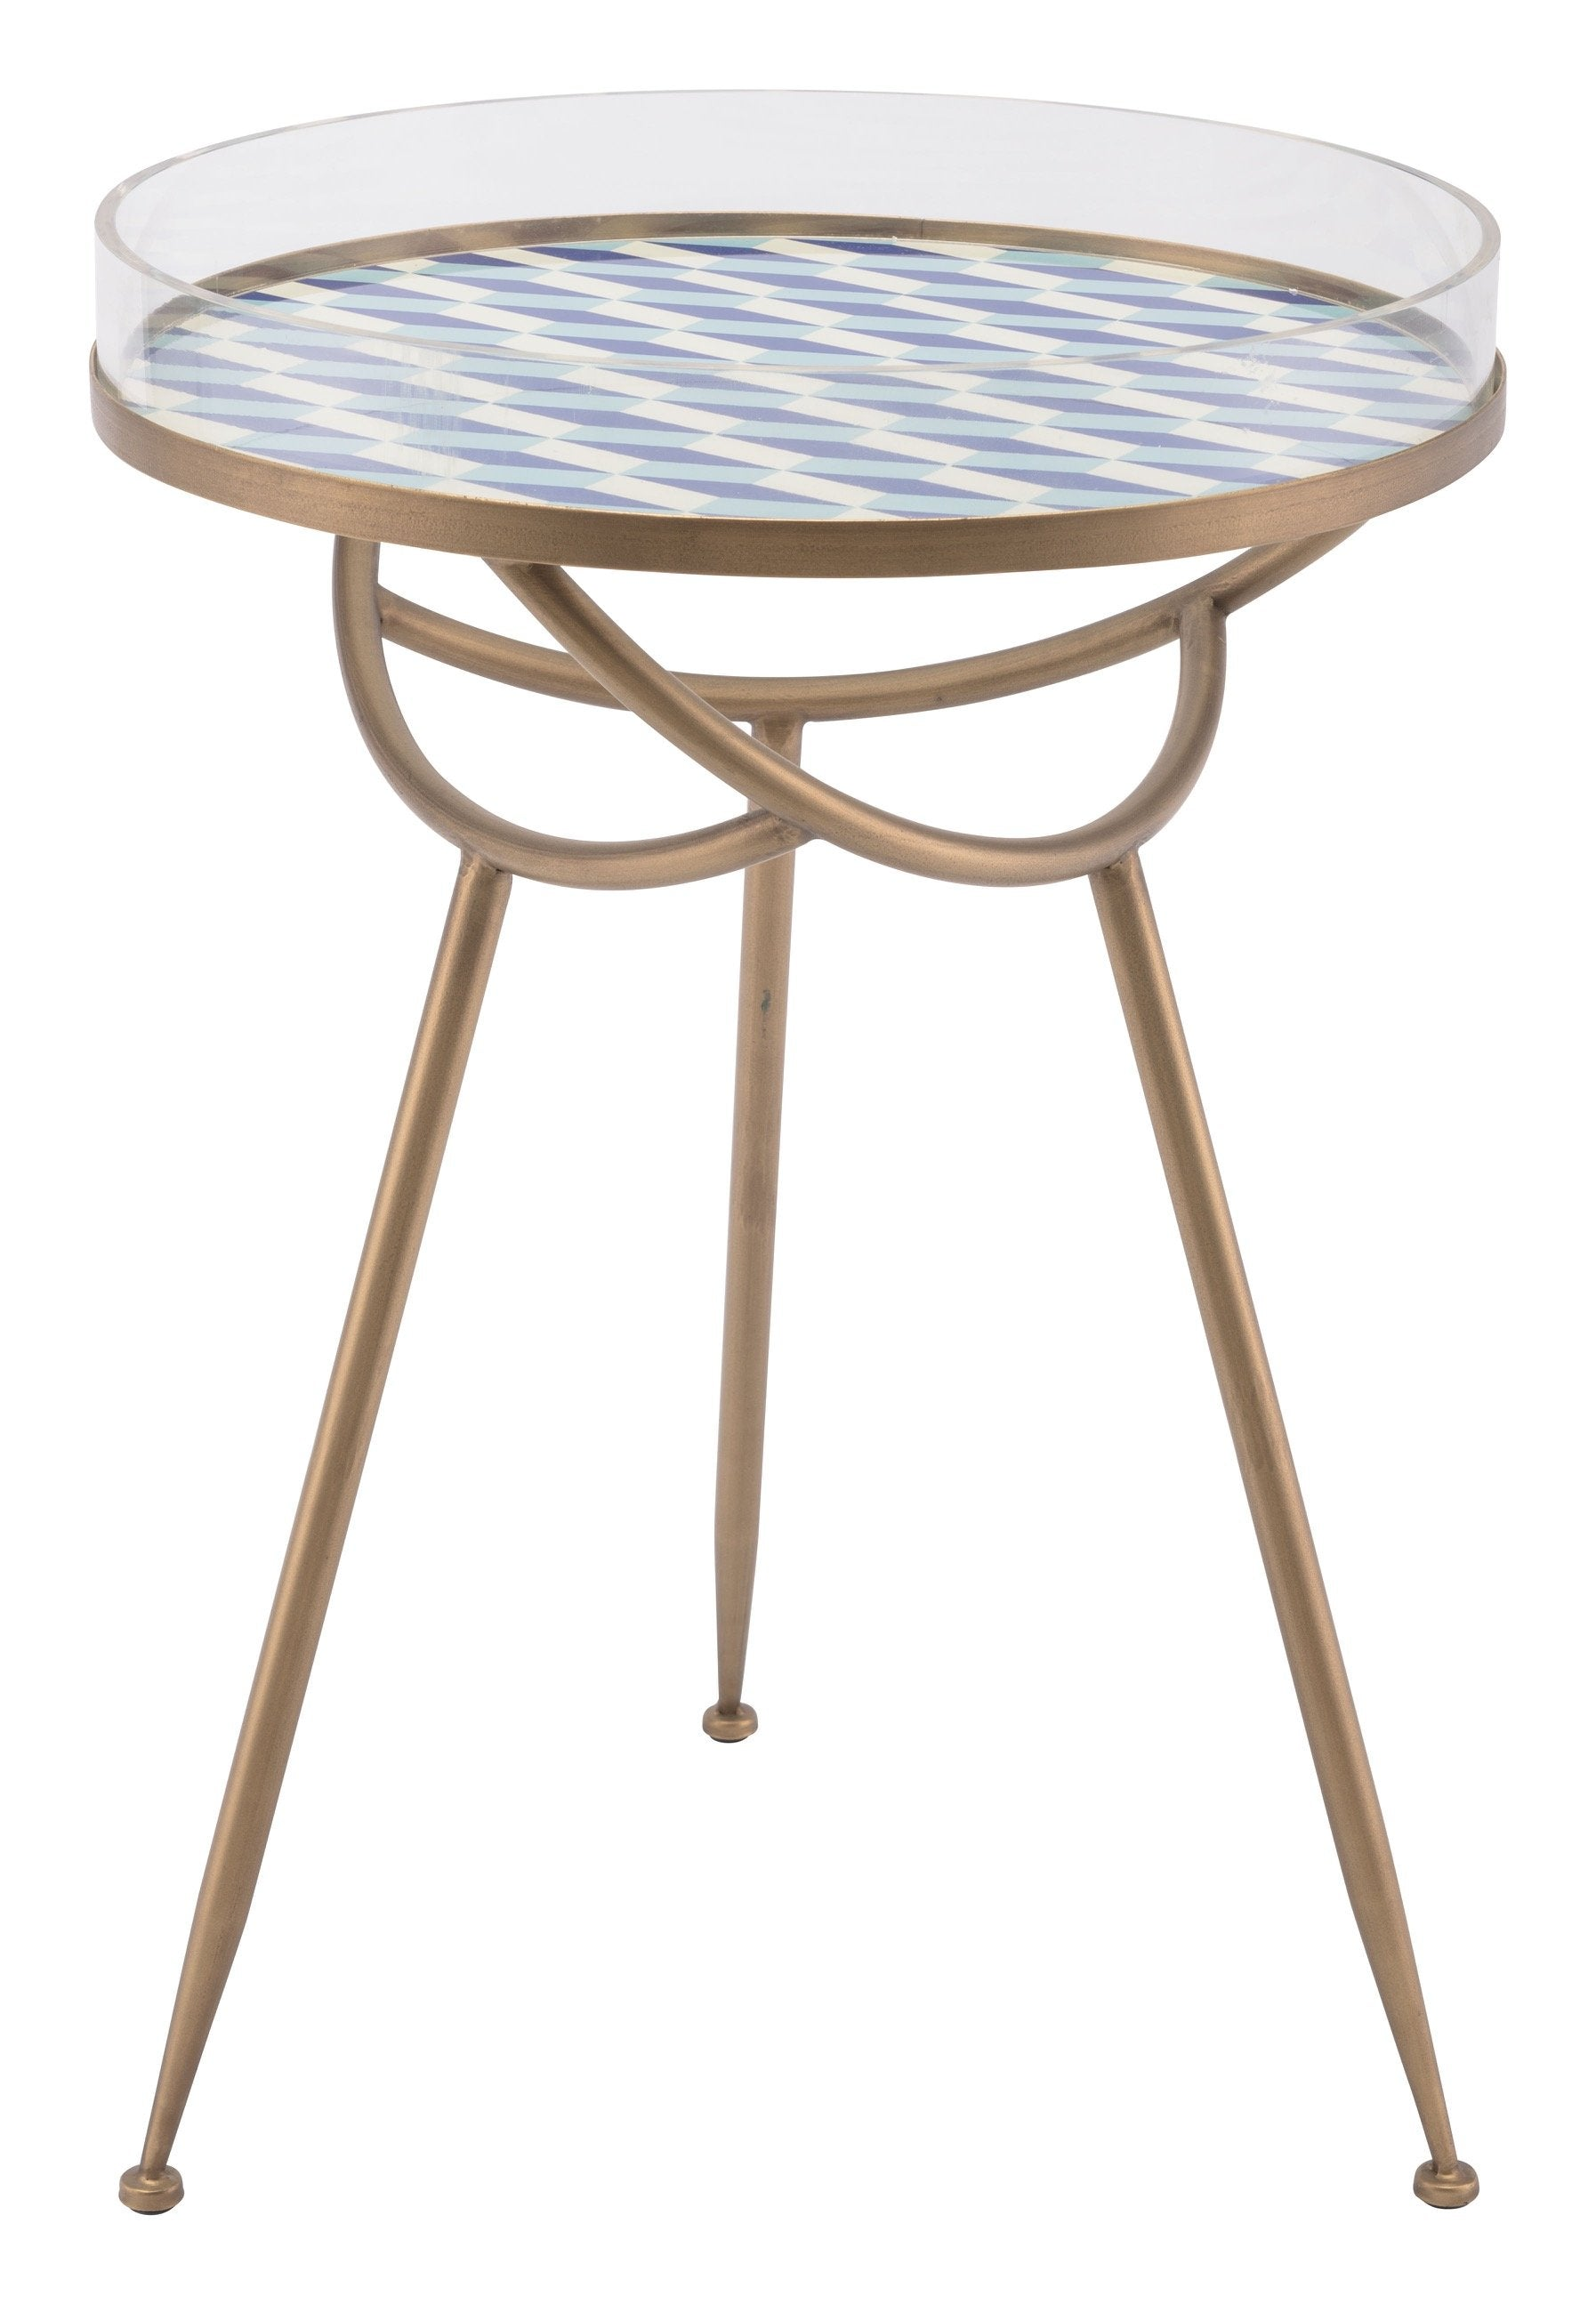 Lattice Round Table In Blue And Gold With Removable Tray Top Side Tables  Alan